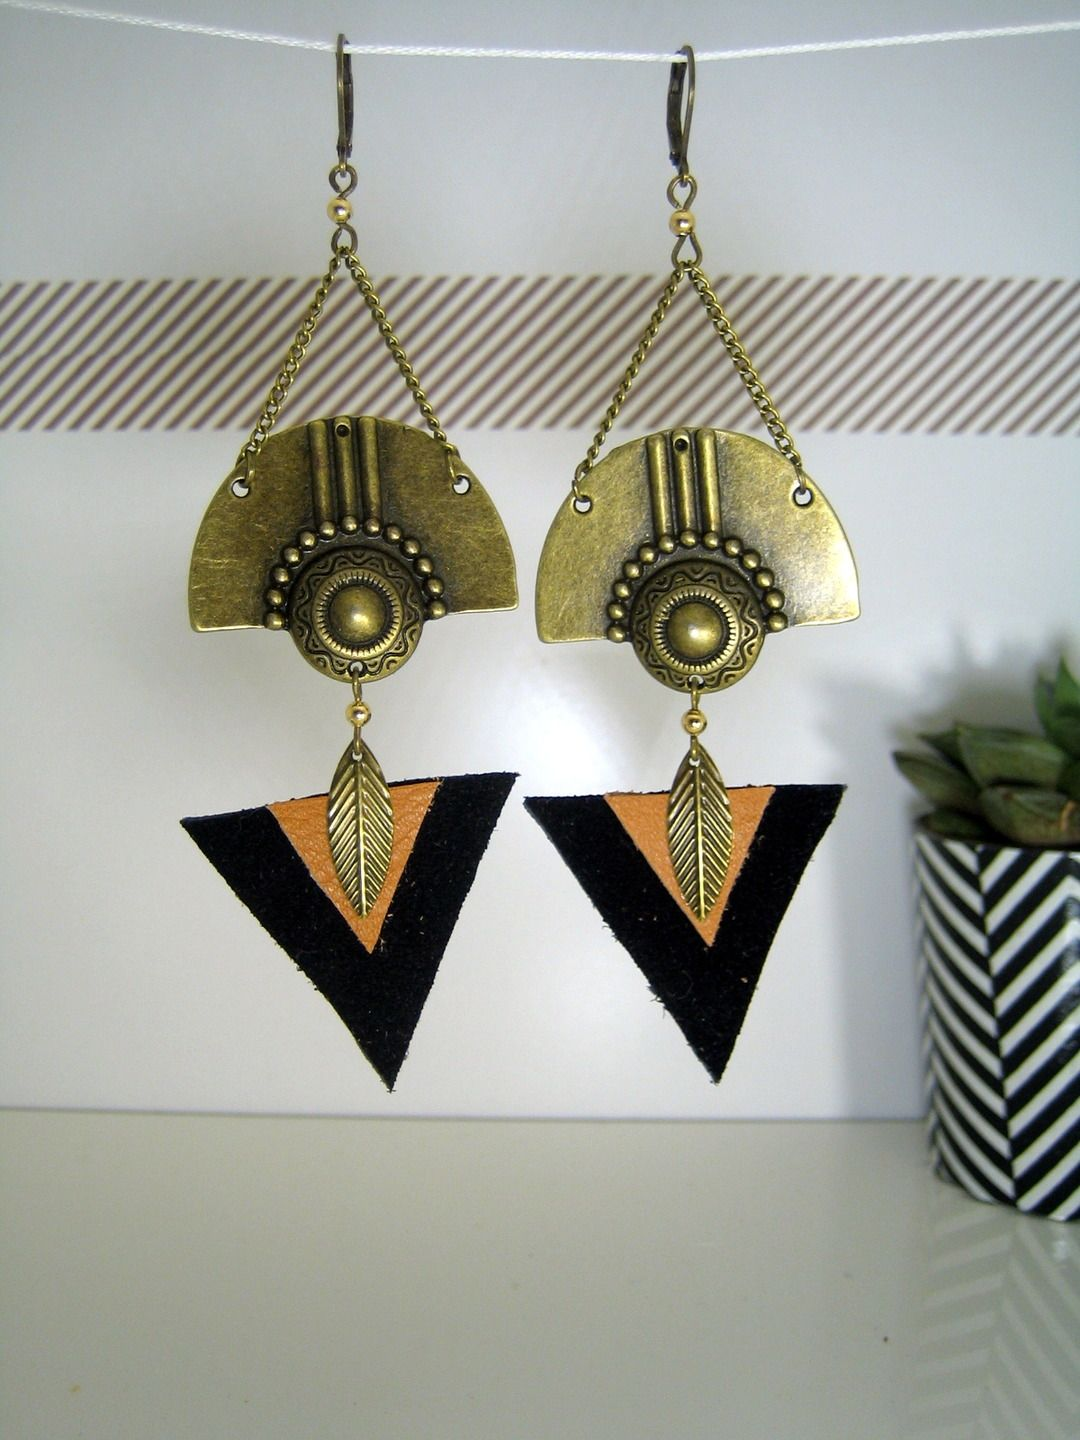 diy boucles d oreille ethnique bijoux la mode. Black Bedroom Furniture Sets. Home Design Ideas